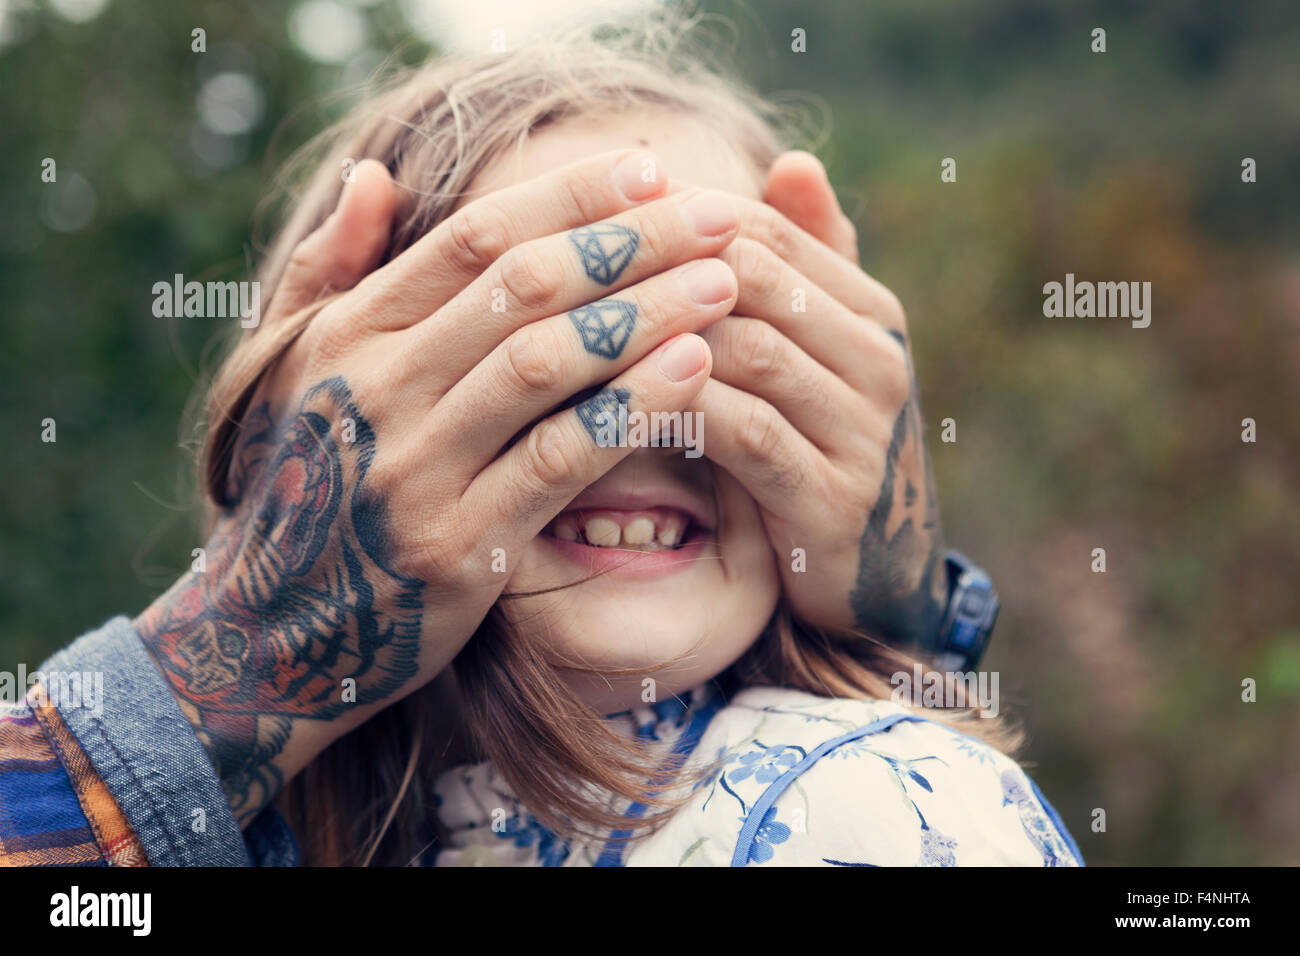 Man's tattooed hands covering eyes of his daughter - Stock Image